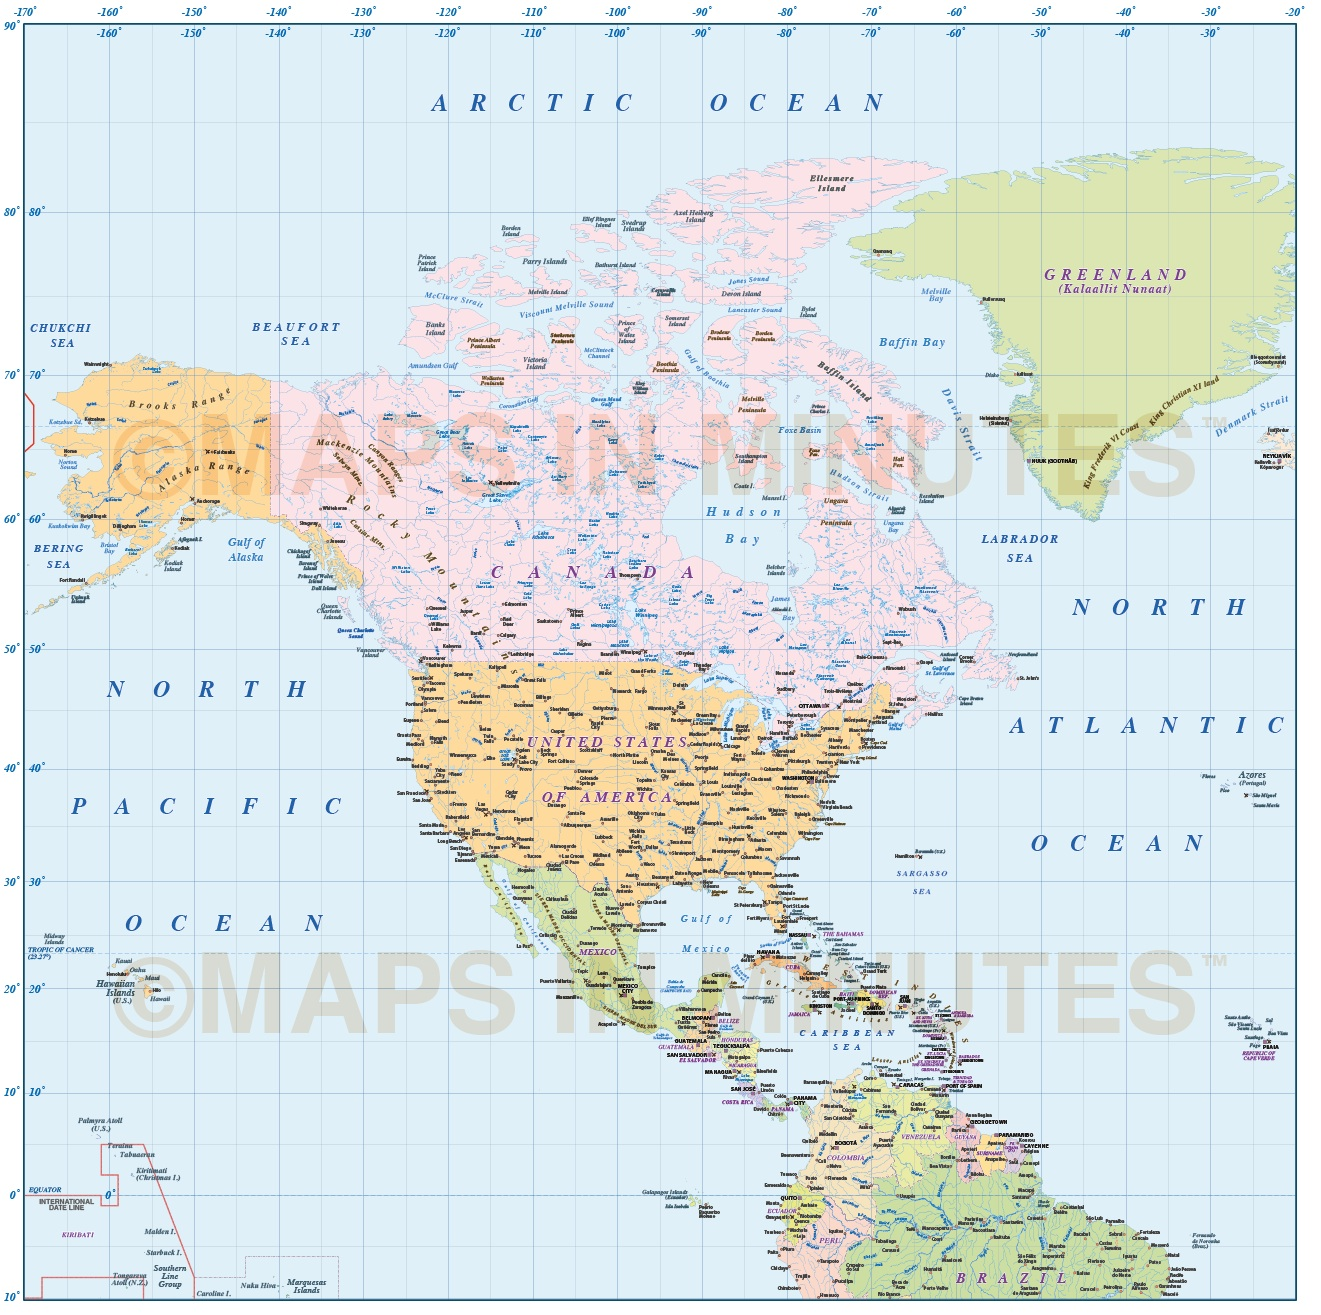 North America Region Simple Country map @10,000,000 scale in ...